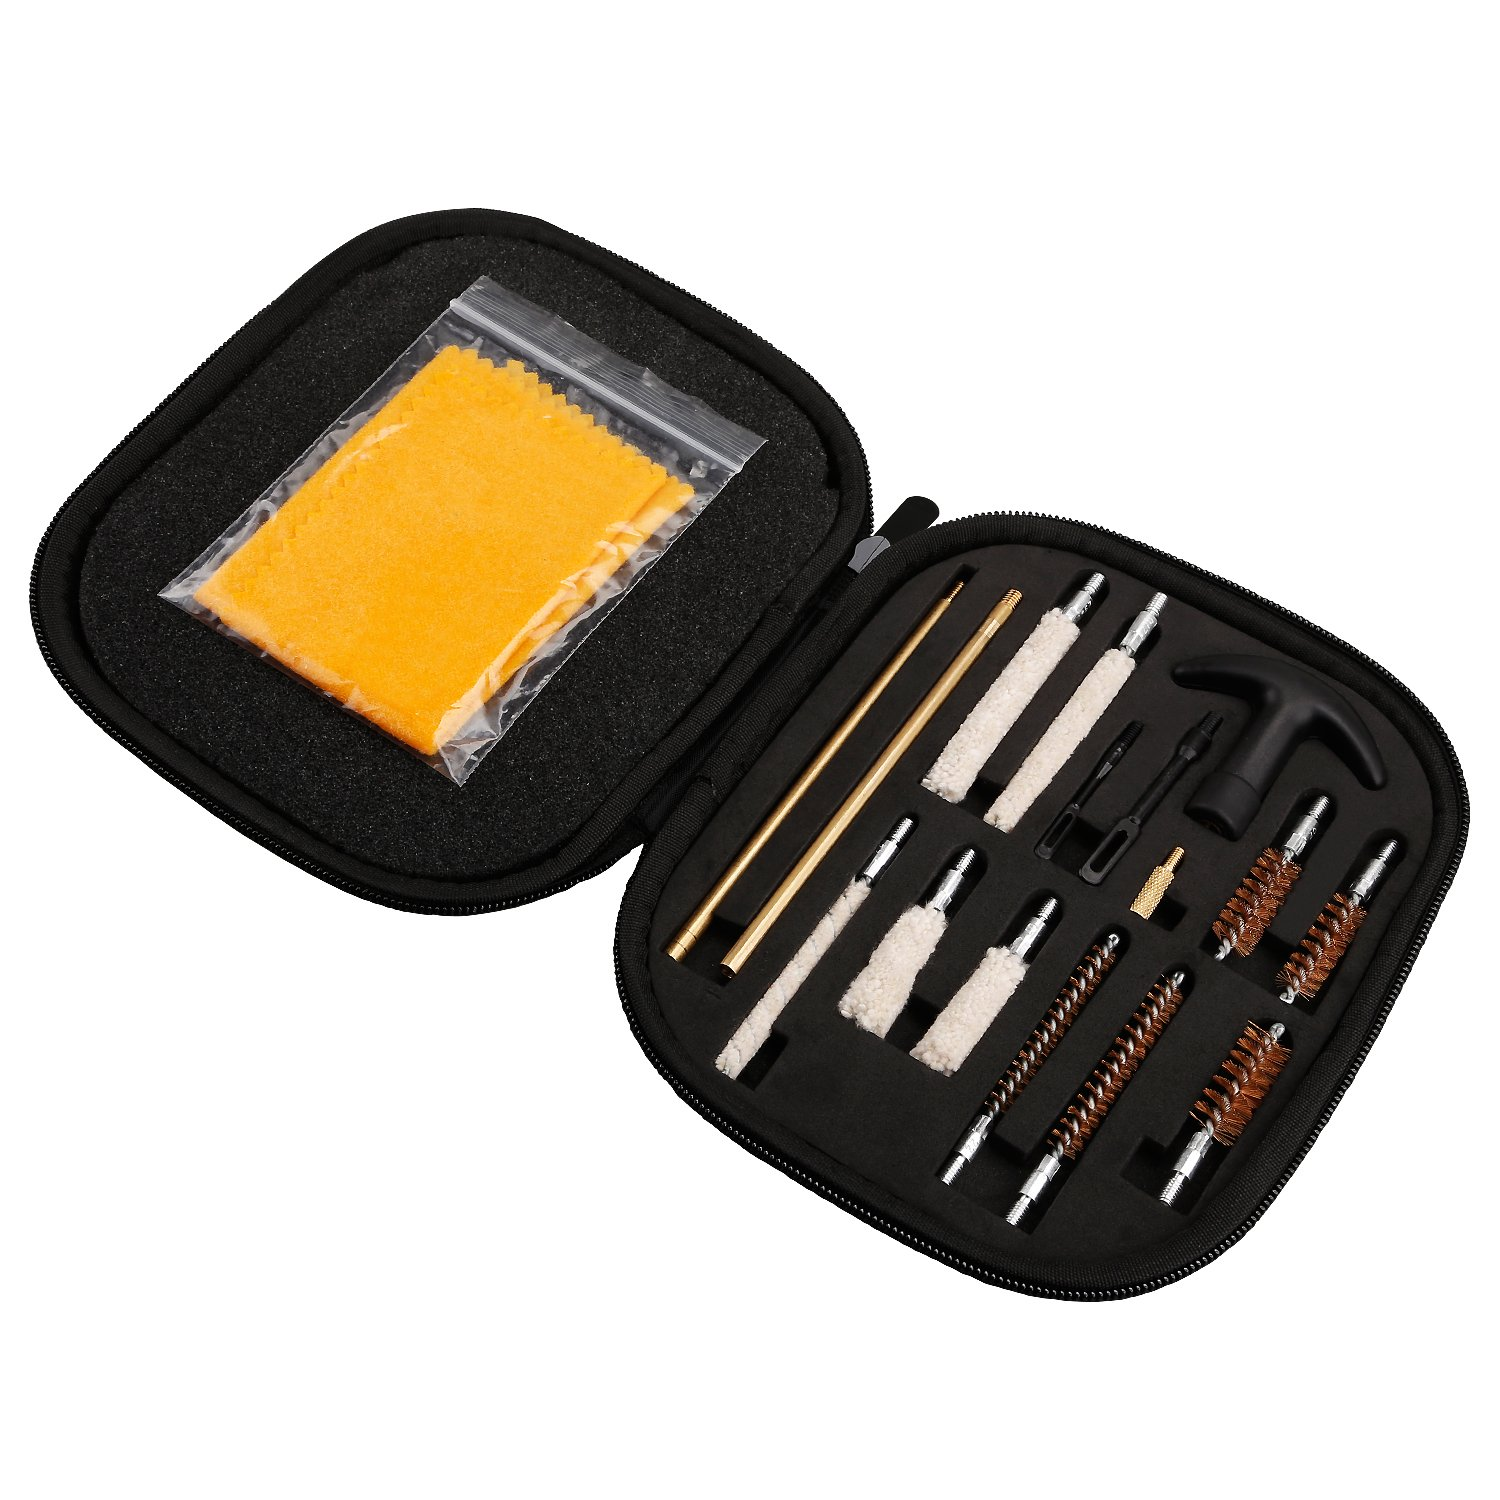 Gun Cleaning Kit Pistol Cleaning Kit with Brass Brushes and Cleaning Mops Perfect for .22,.27,.357(9mm),.40,.45cal Handgun Cleaning